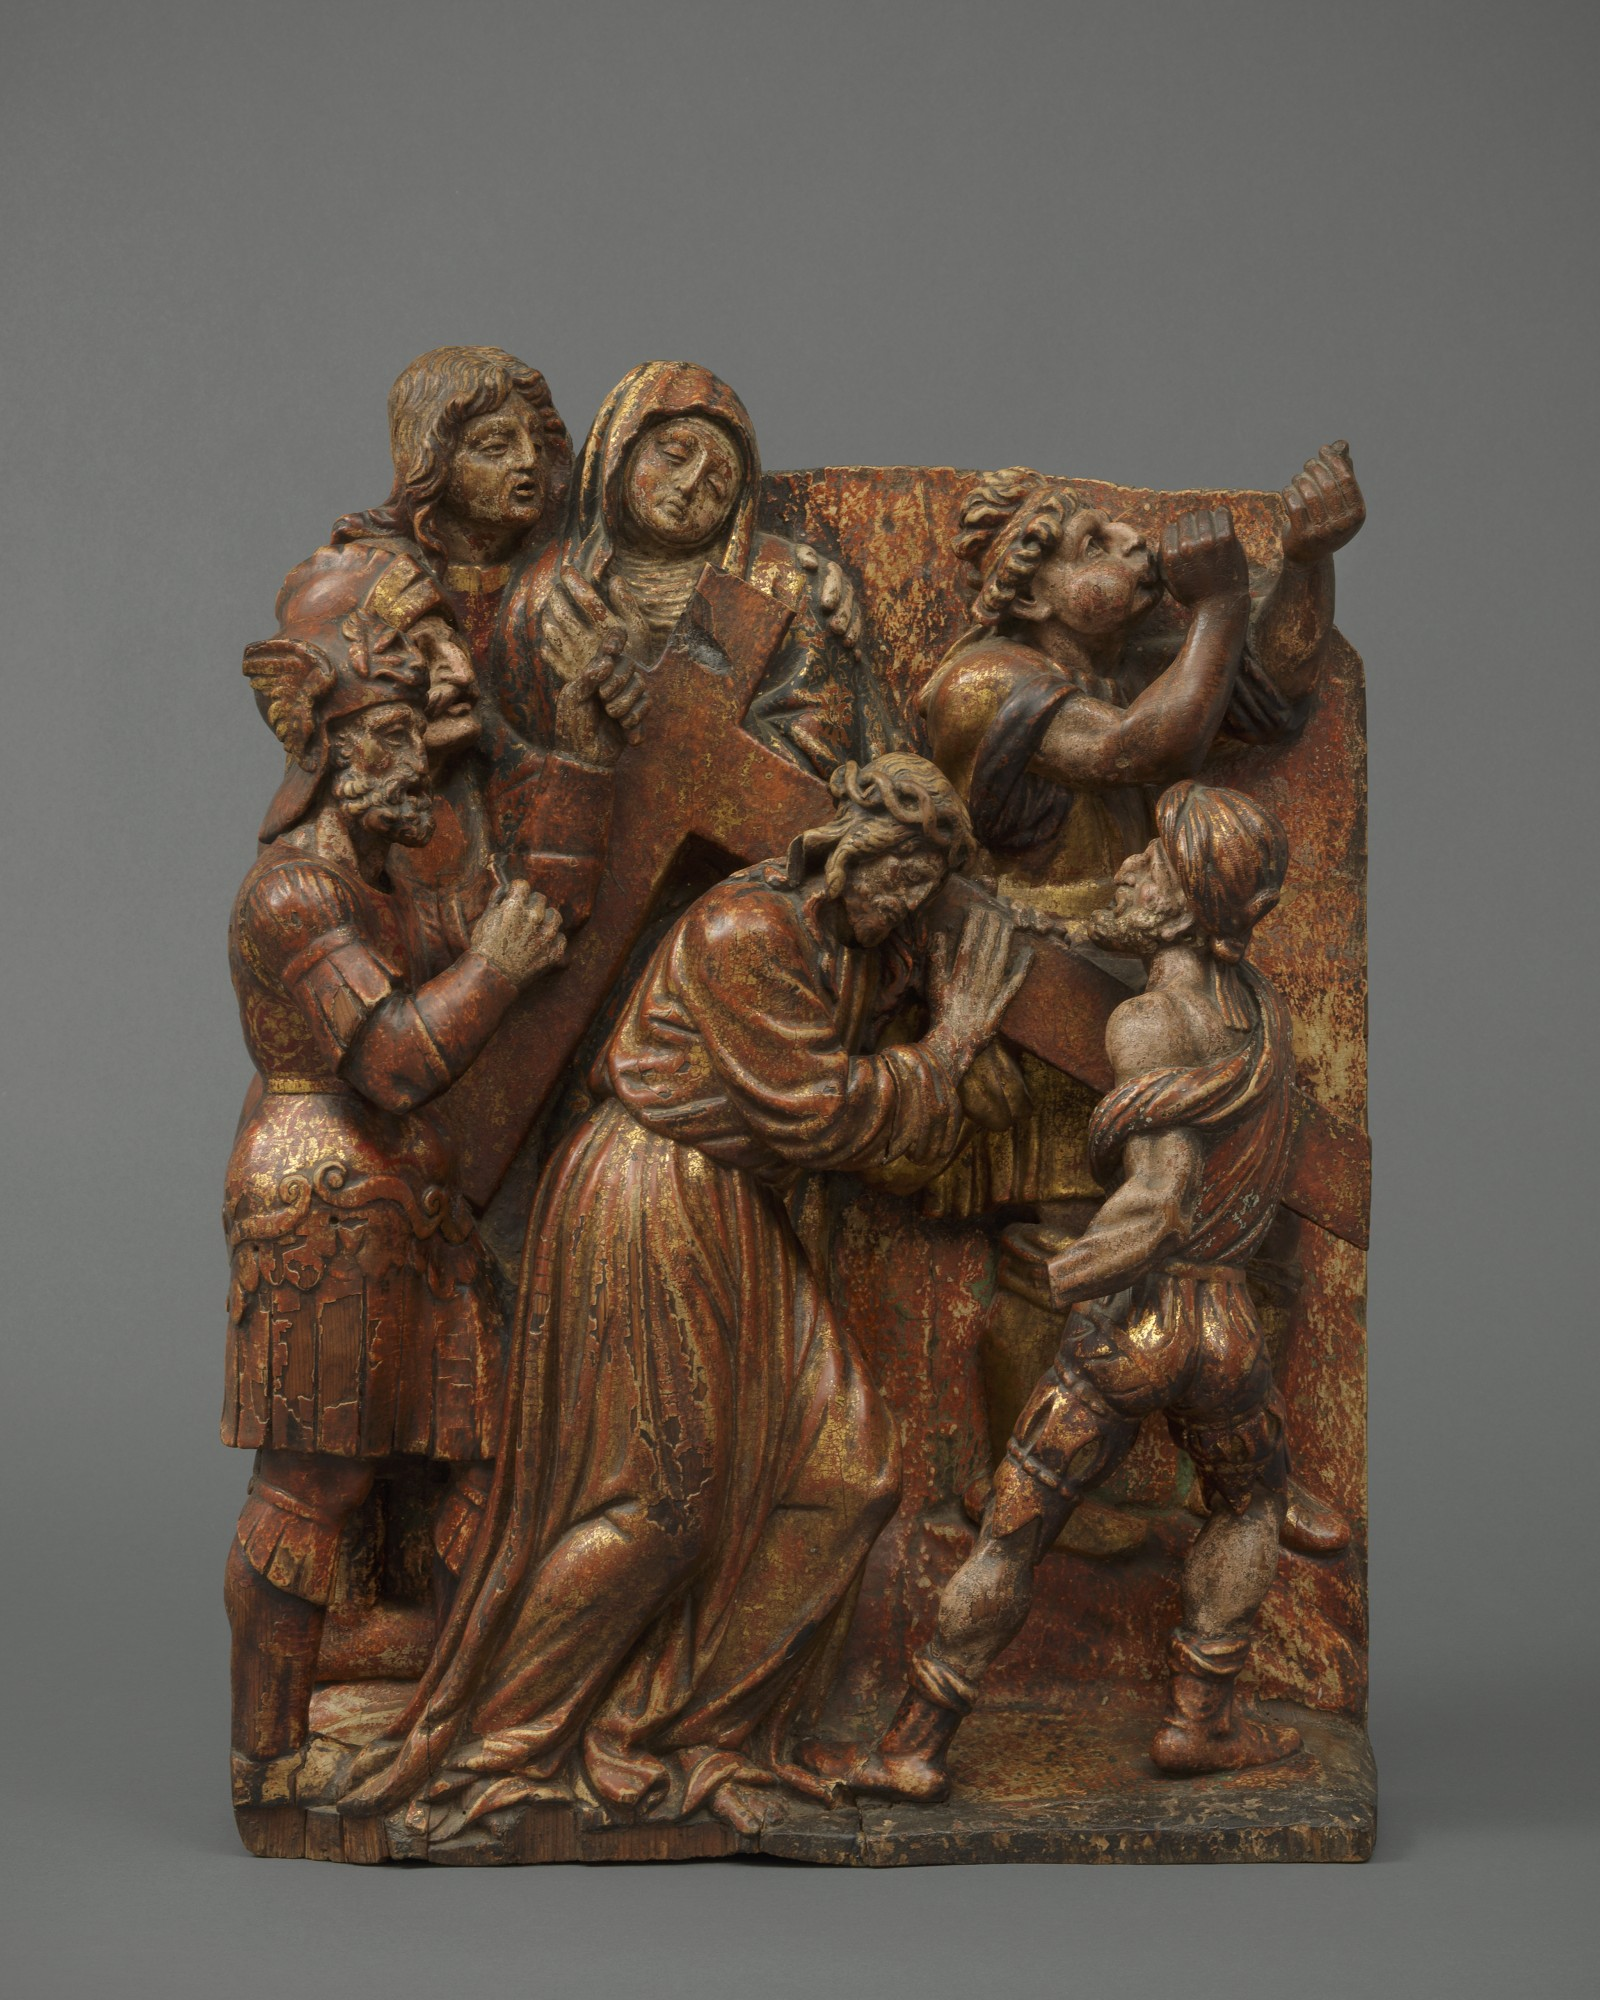 Christ Carrying the Cross, Spain, Castile, Valladolid, mid 16th century